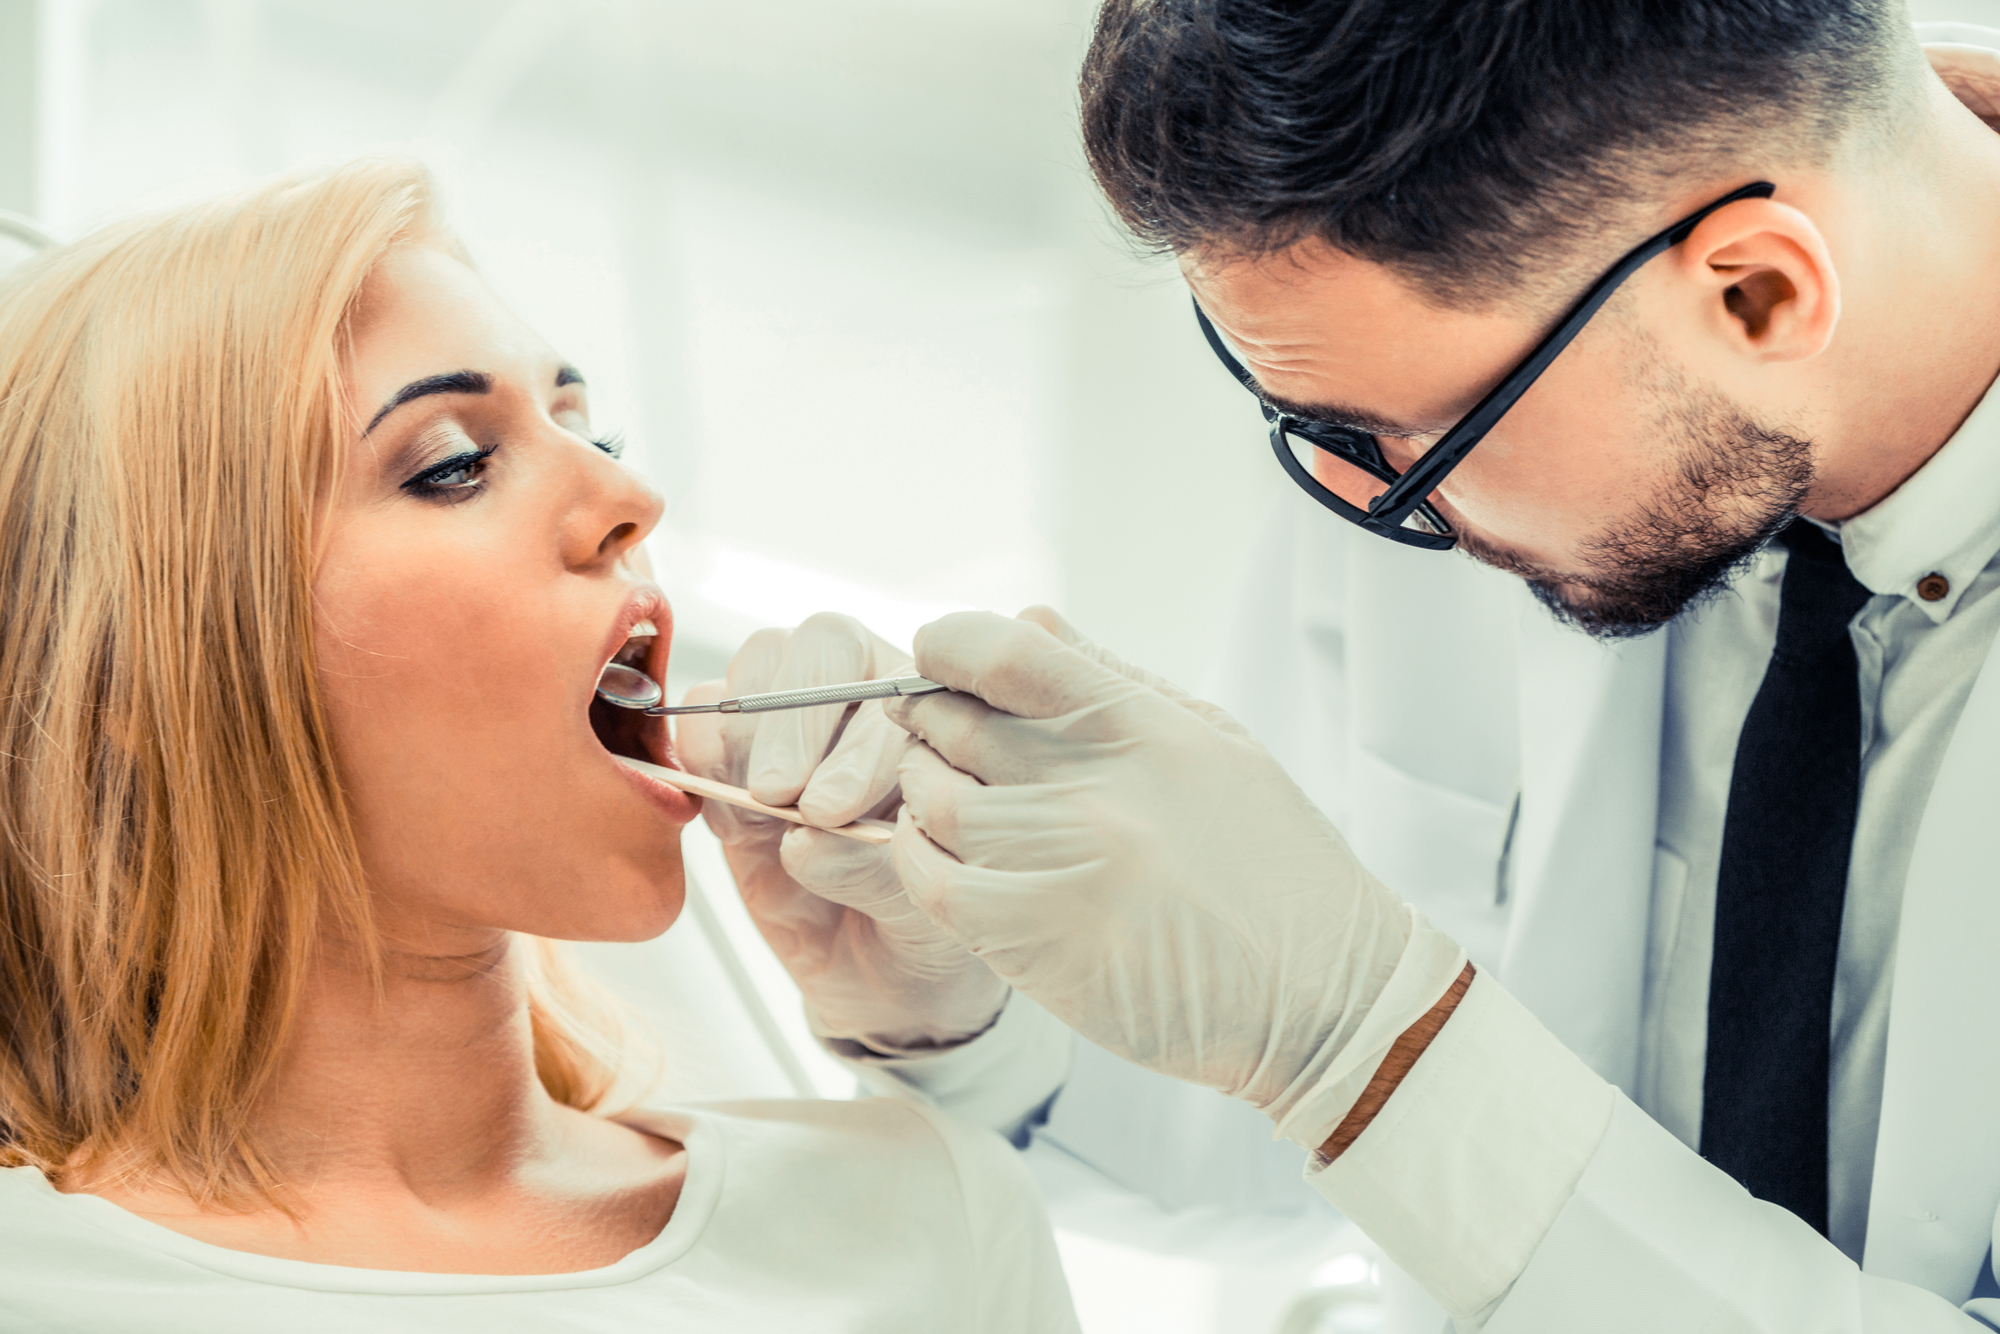 Young dentist examining patient in dental clinic.